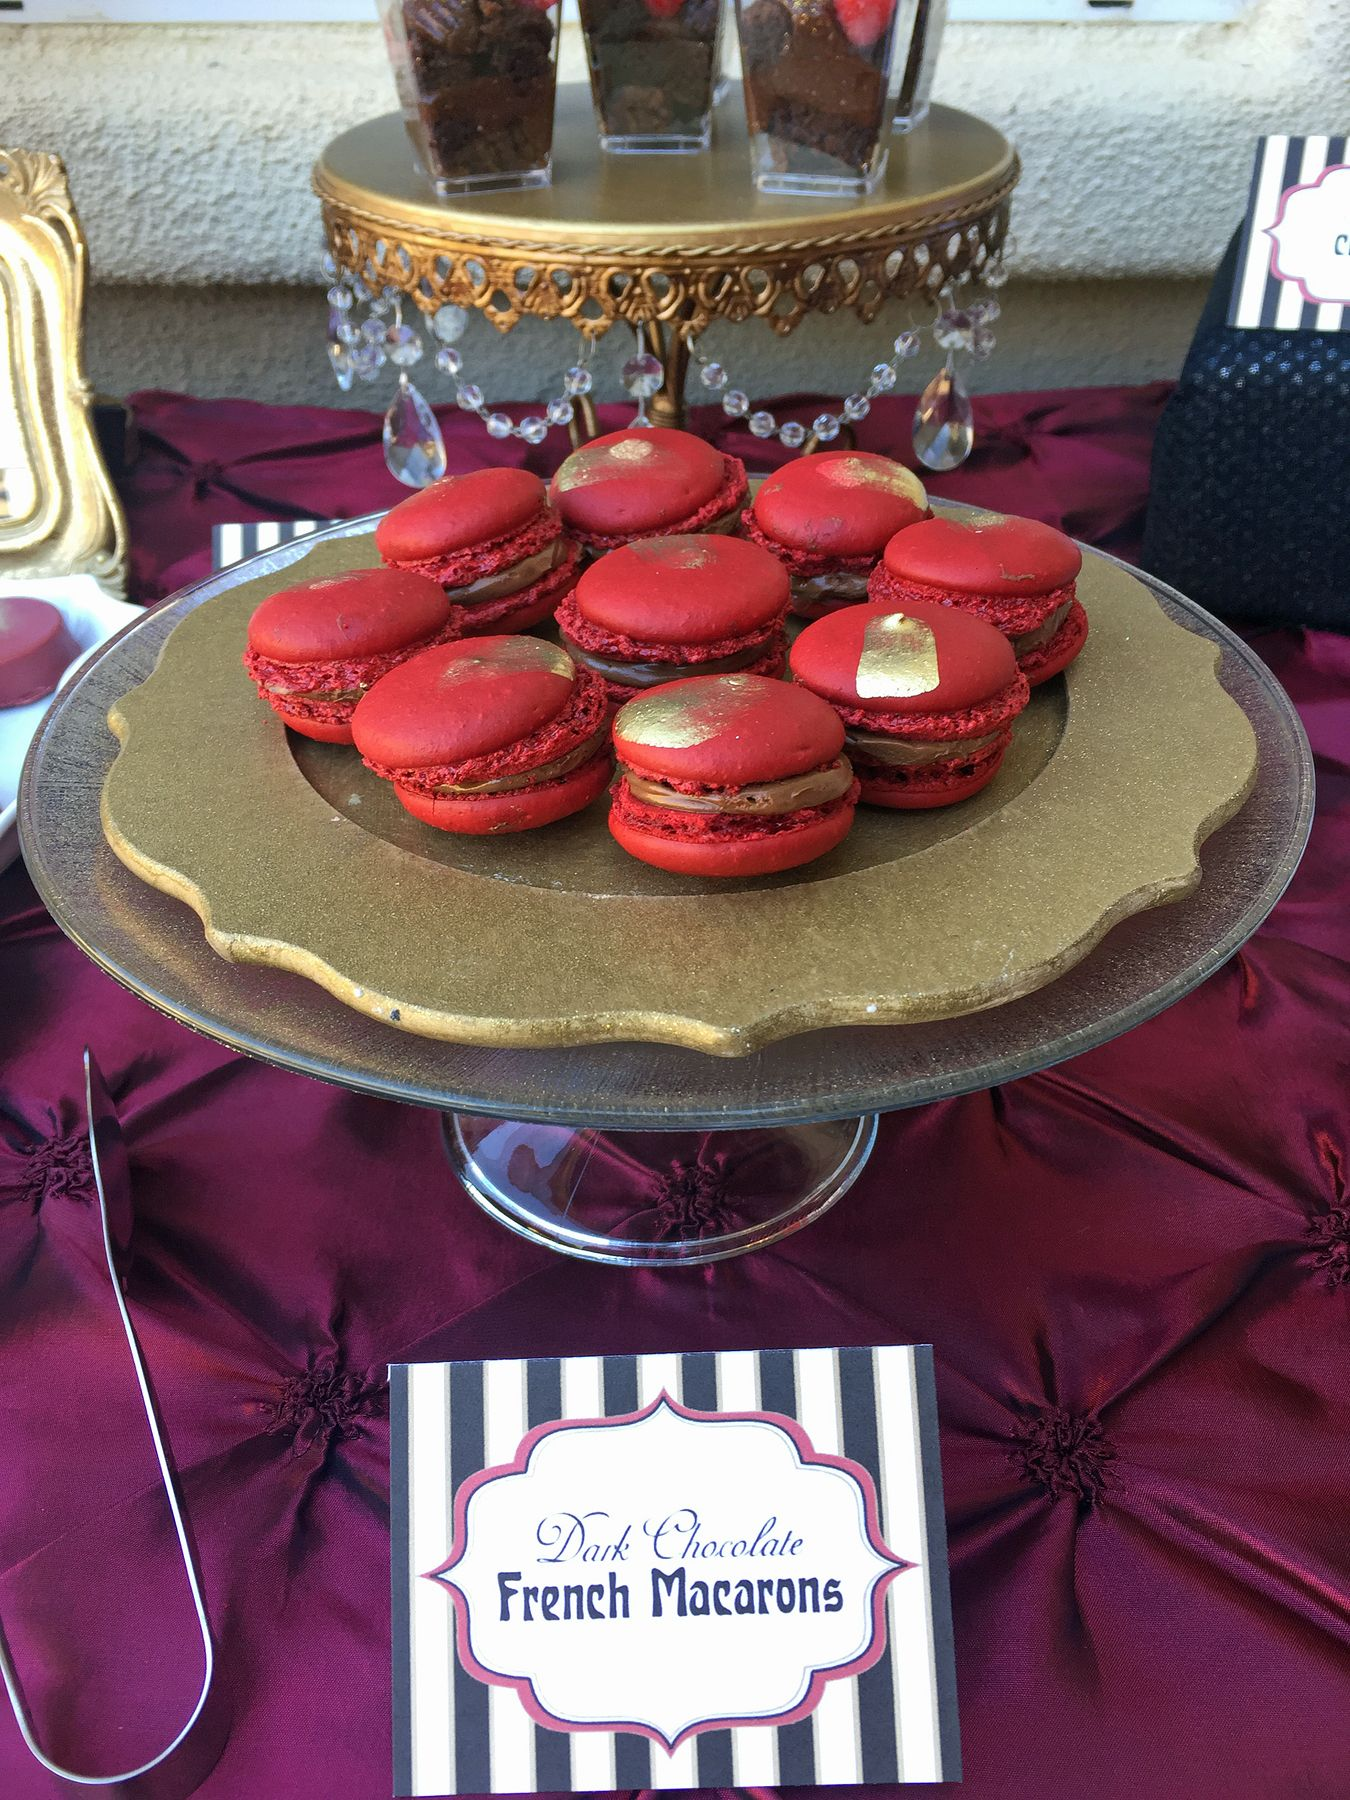 Moulin rouge party moulin rouge party pinterest - Moulin Rouge Party La Dolce Idea Weddings Soirees San Diego Cake Pop Shop